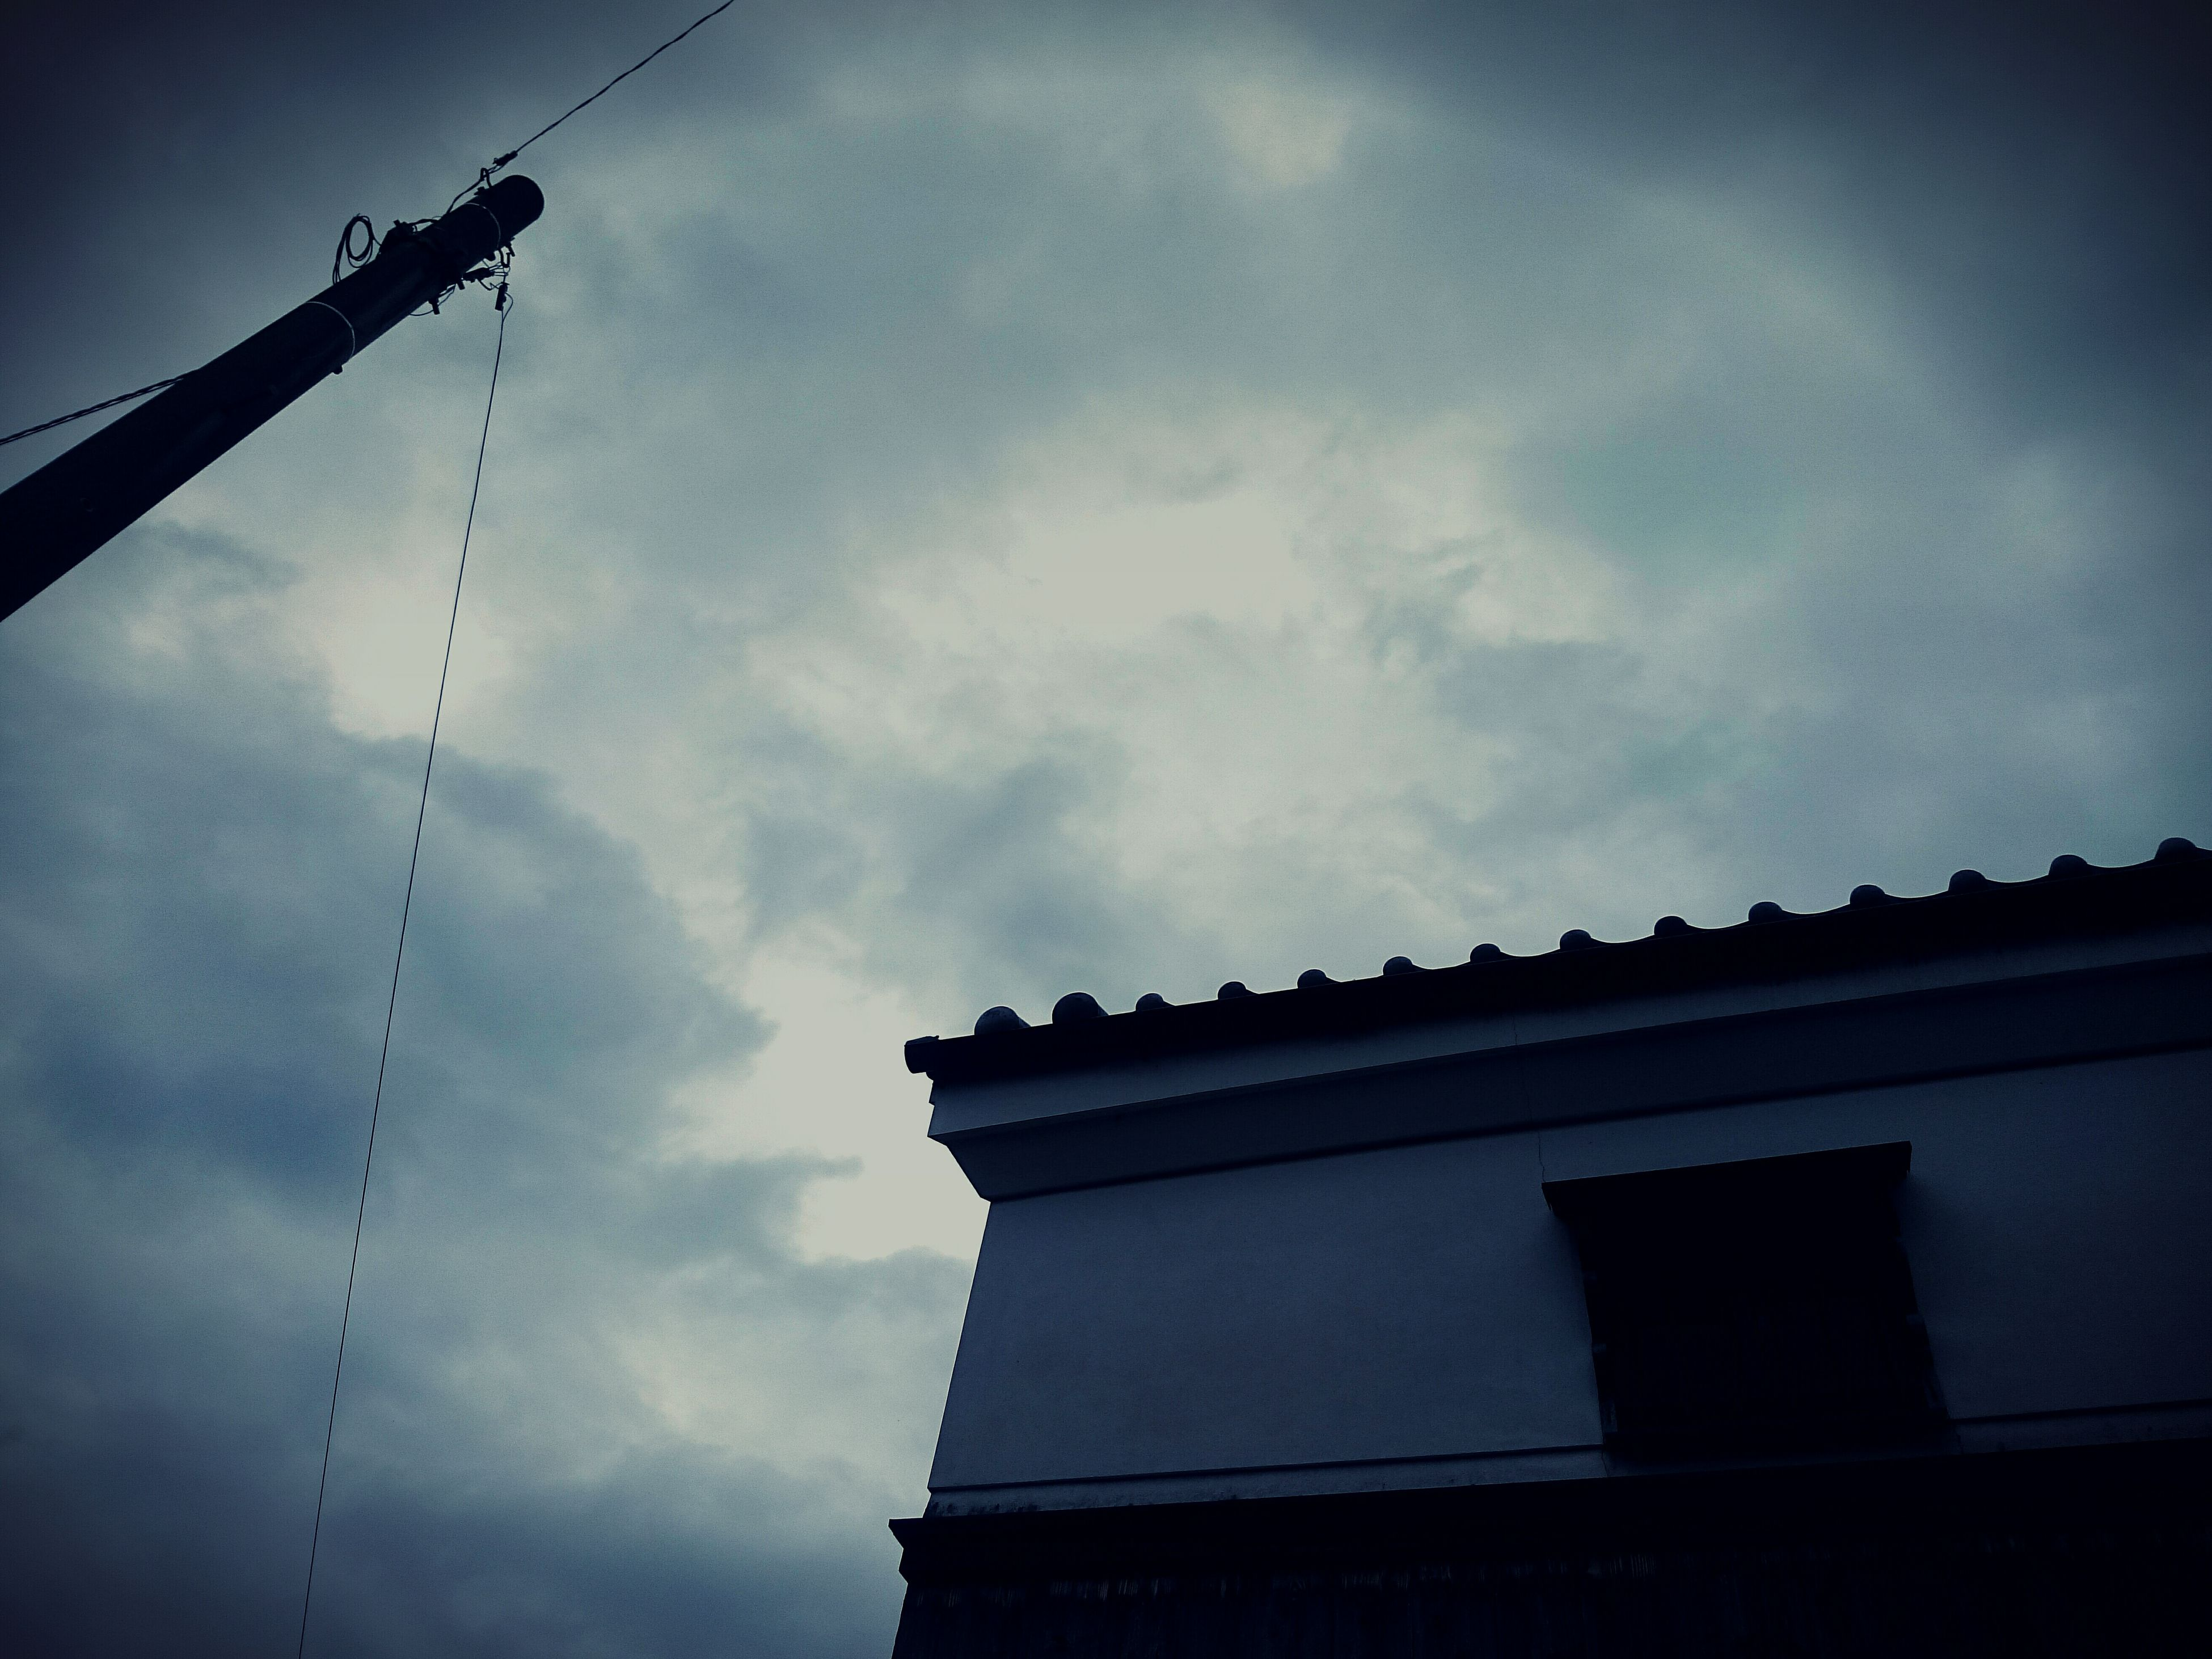 low angle view, architecture, sky, built structure, building exterior, cloud - sky, power line, cloudy, cable, building, street light, cloud, outdoors, lighting equipment, electricity, day, no people, city, high section, residential building